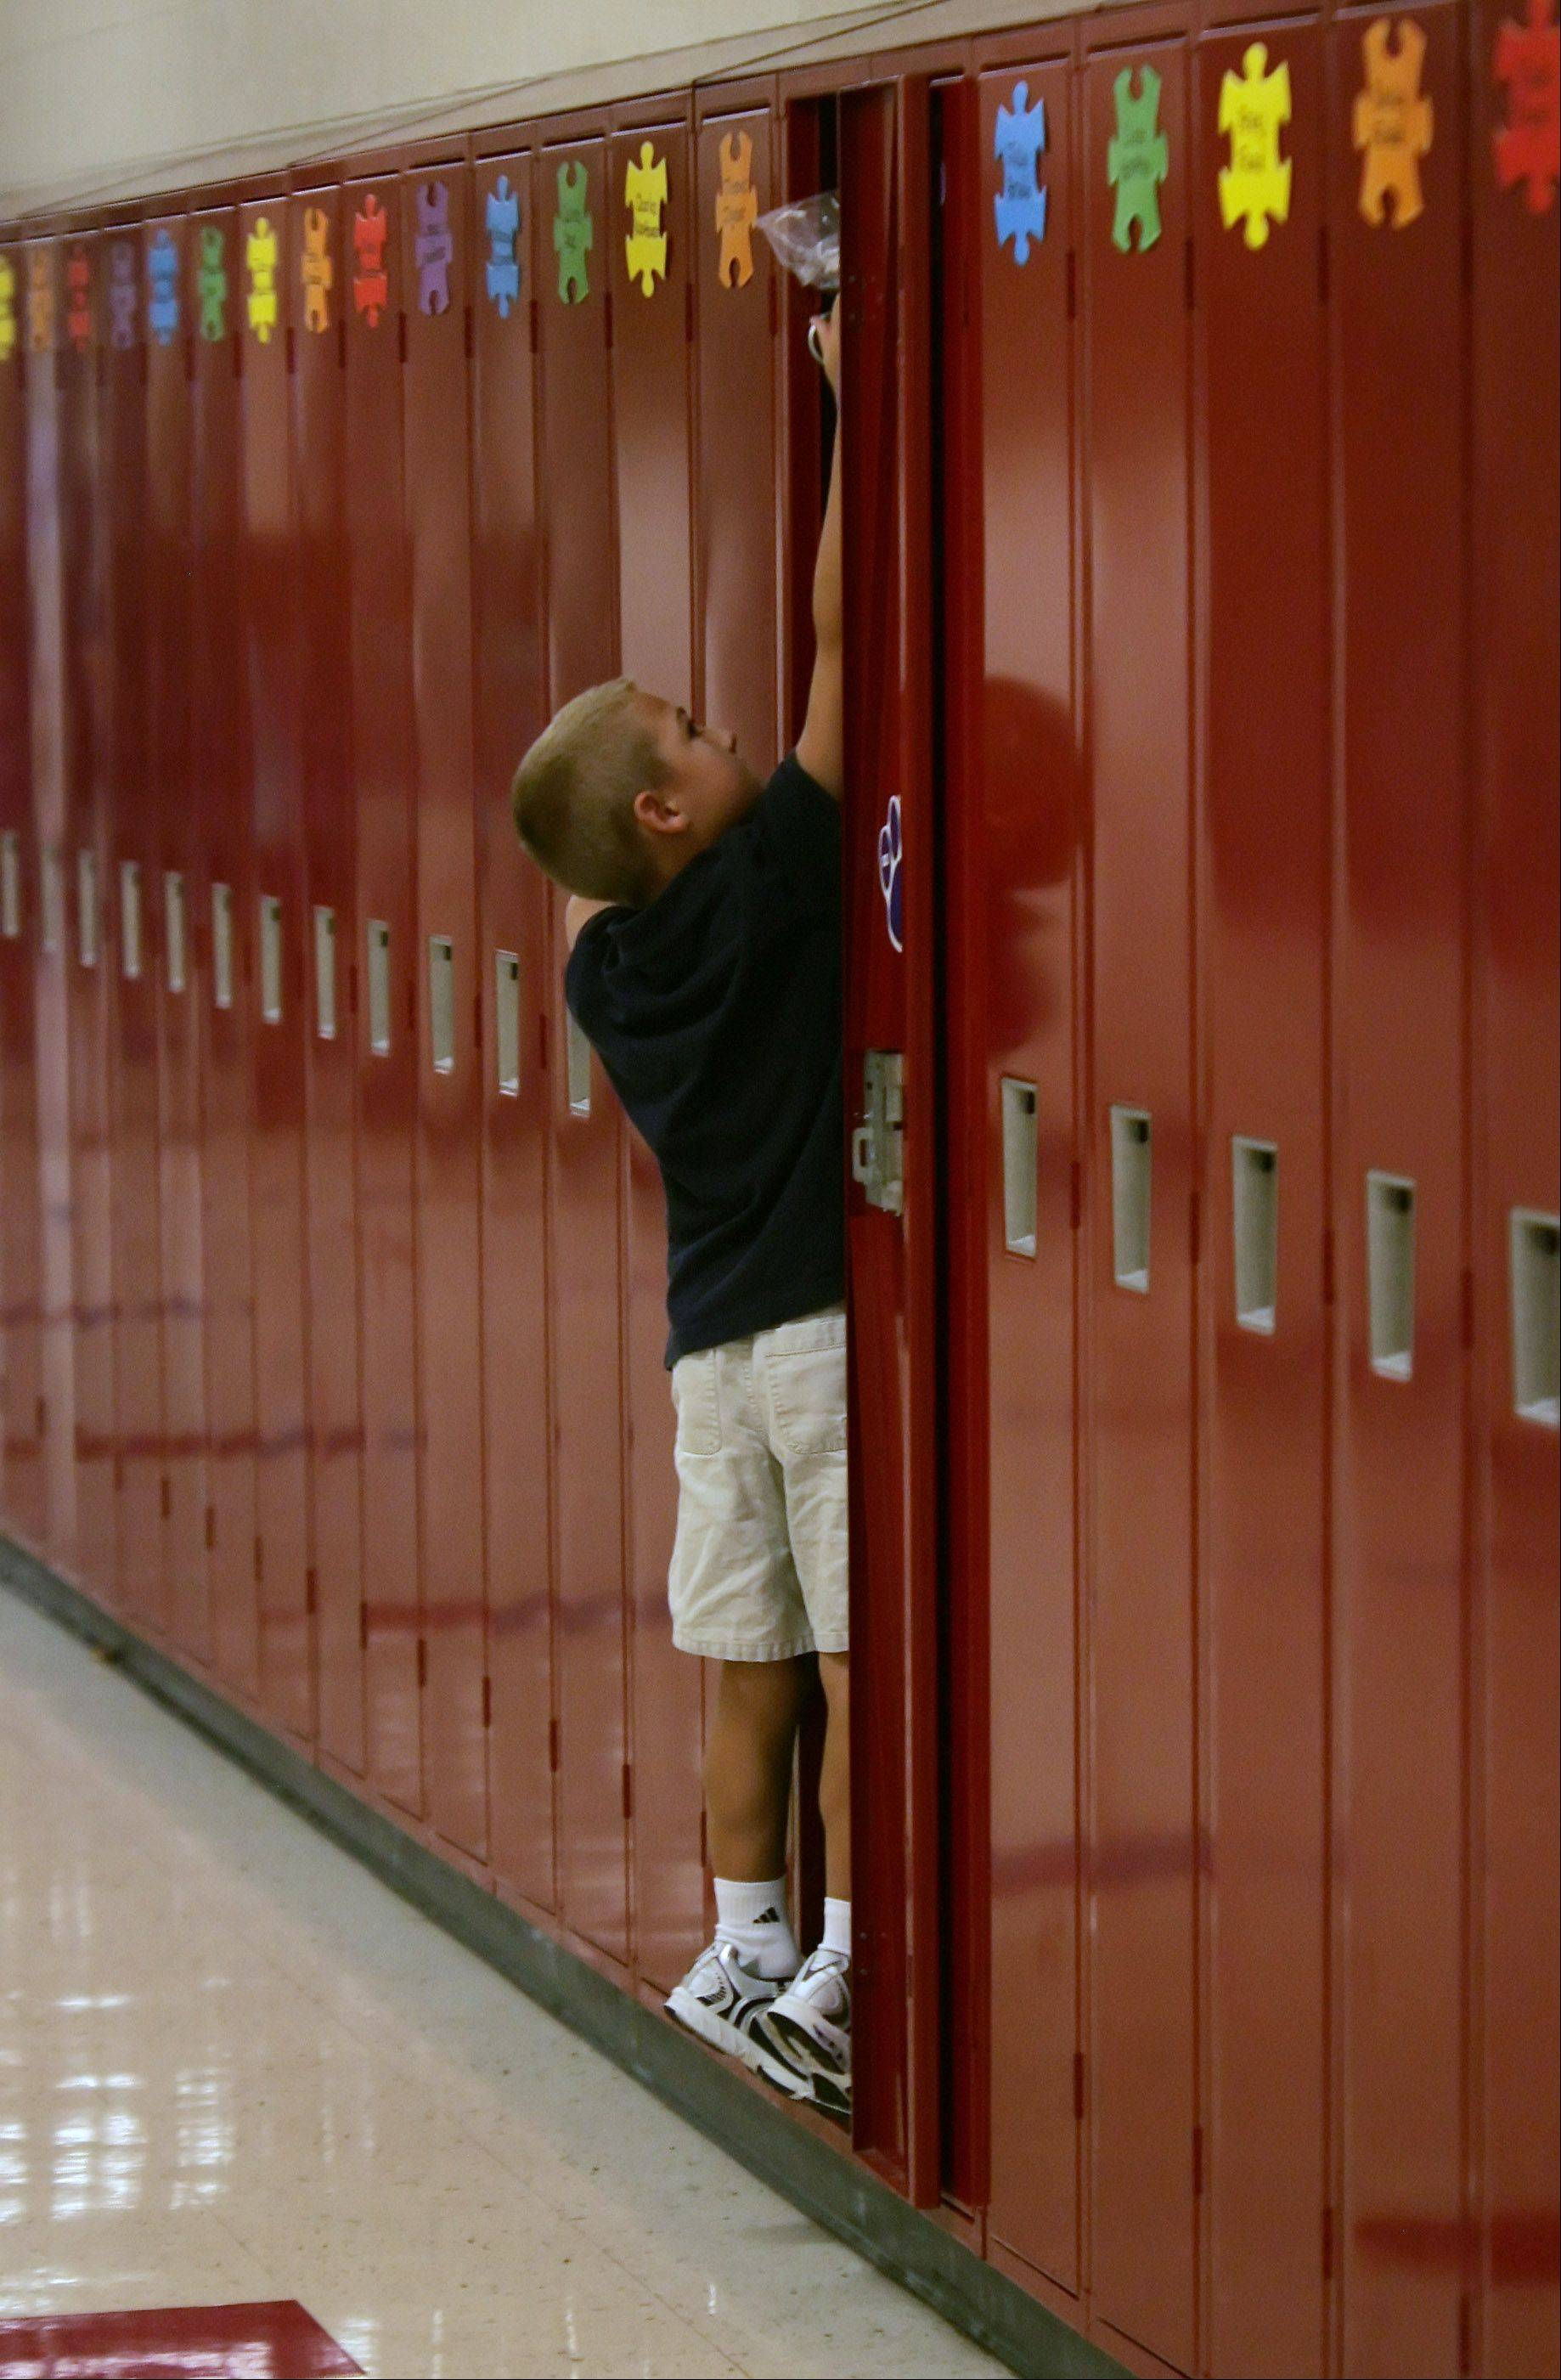 Fourth grader Ben Heft stands in his locker putting away his school supplies during the first day at Millburn Elementary School Thursday. This wing of the school last year held the middle school classes. This is the first year that the entire building is being used as only an elementary school instead of combined with a middle school.